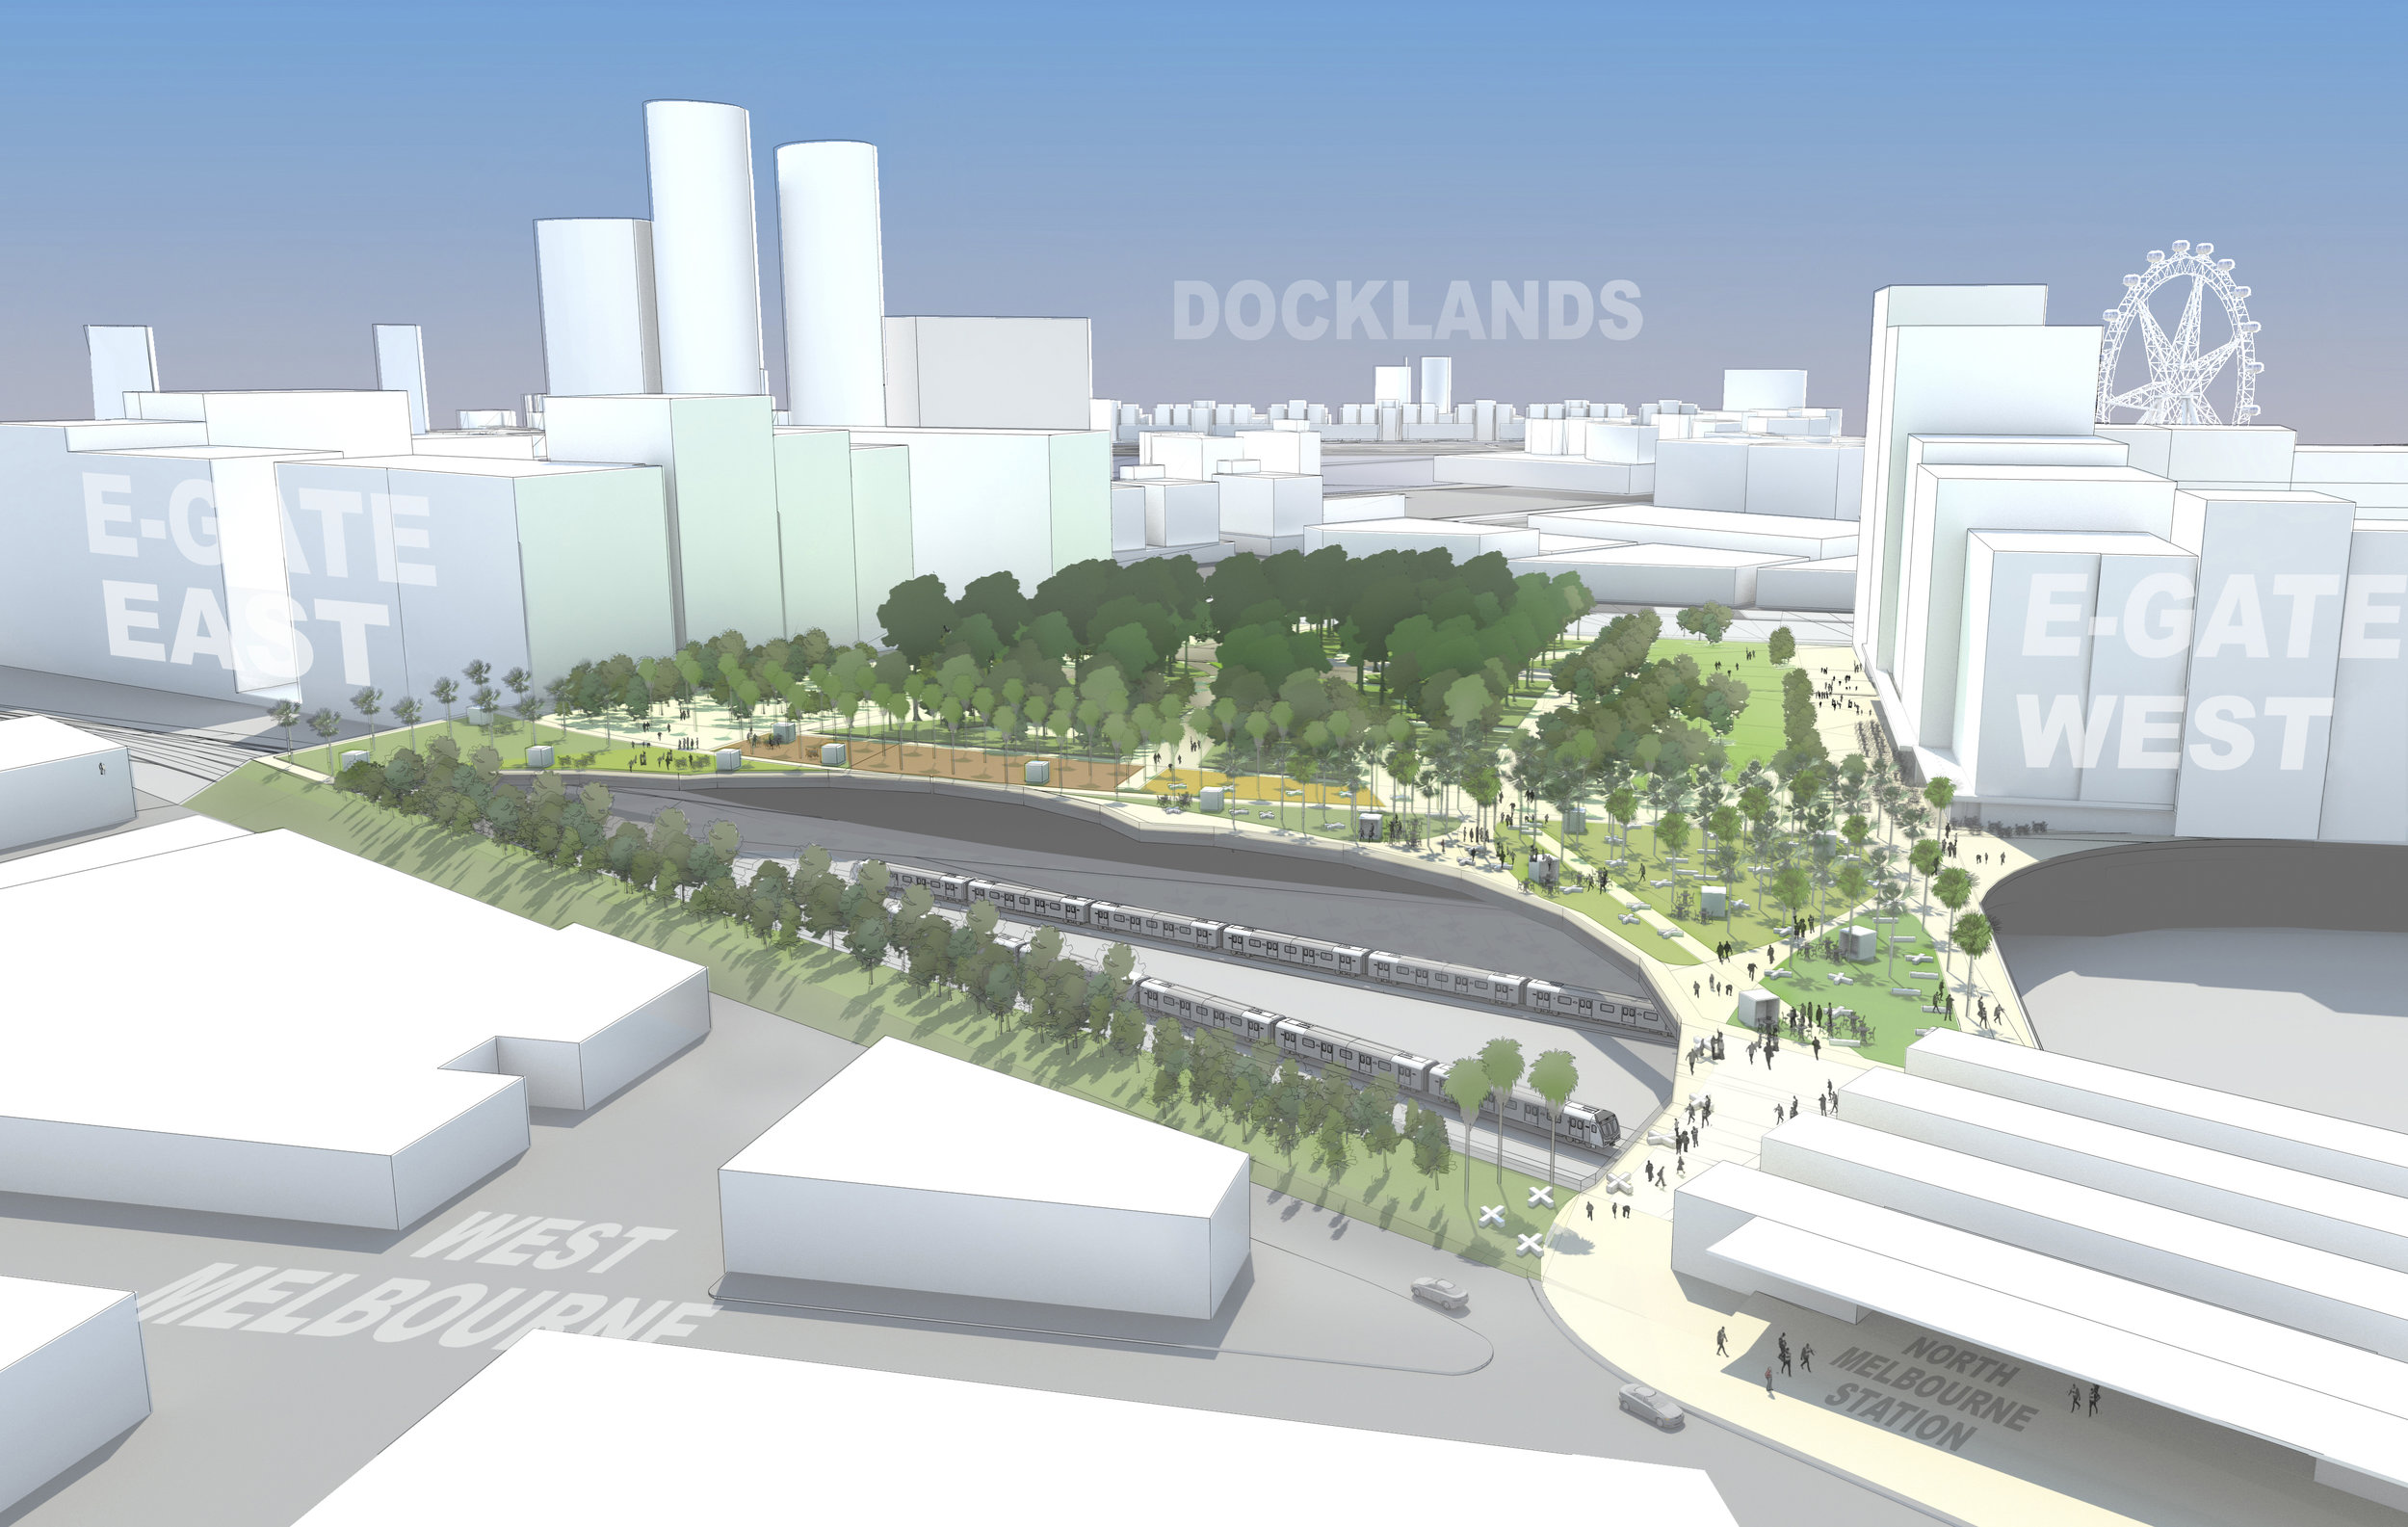 Western Connection is proposing that parkland can be central to the E-Gate development. North Melbourne train station is in the lower right corner of the picture.